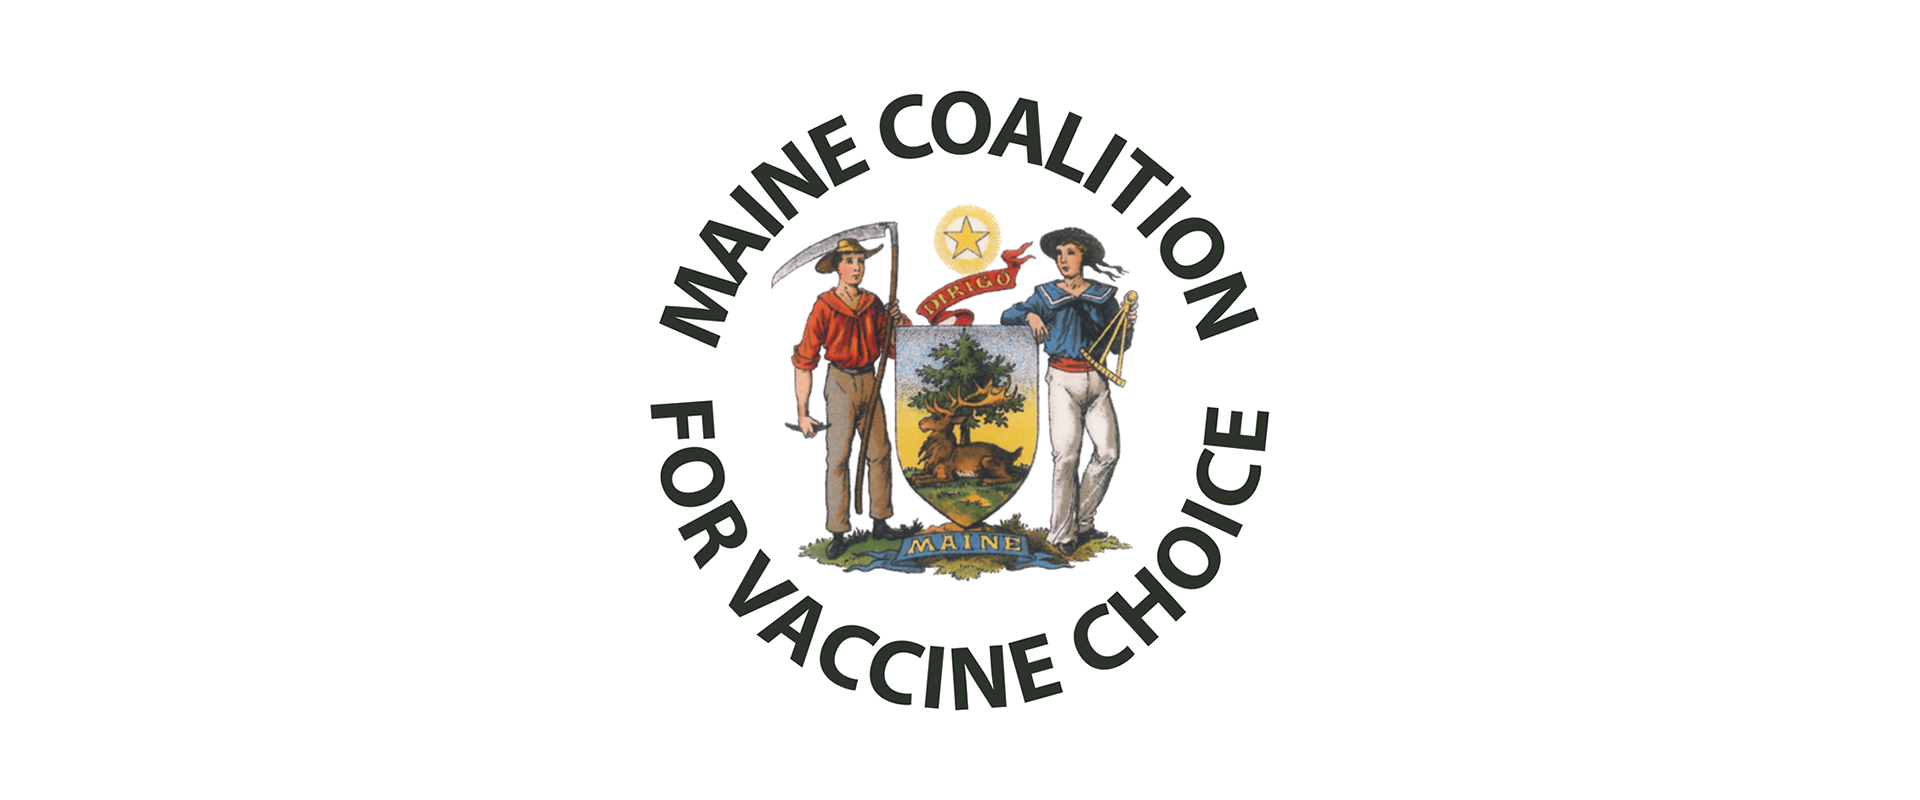 Maine Coalition for Vaccine Choice